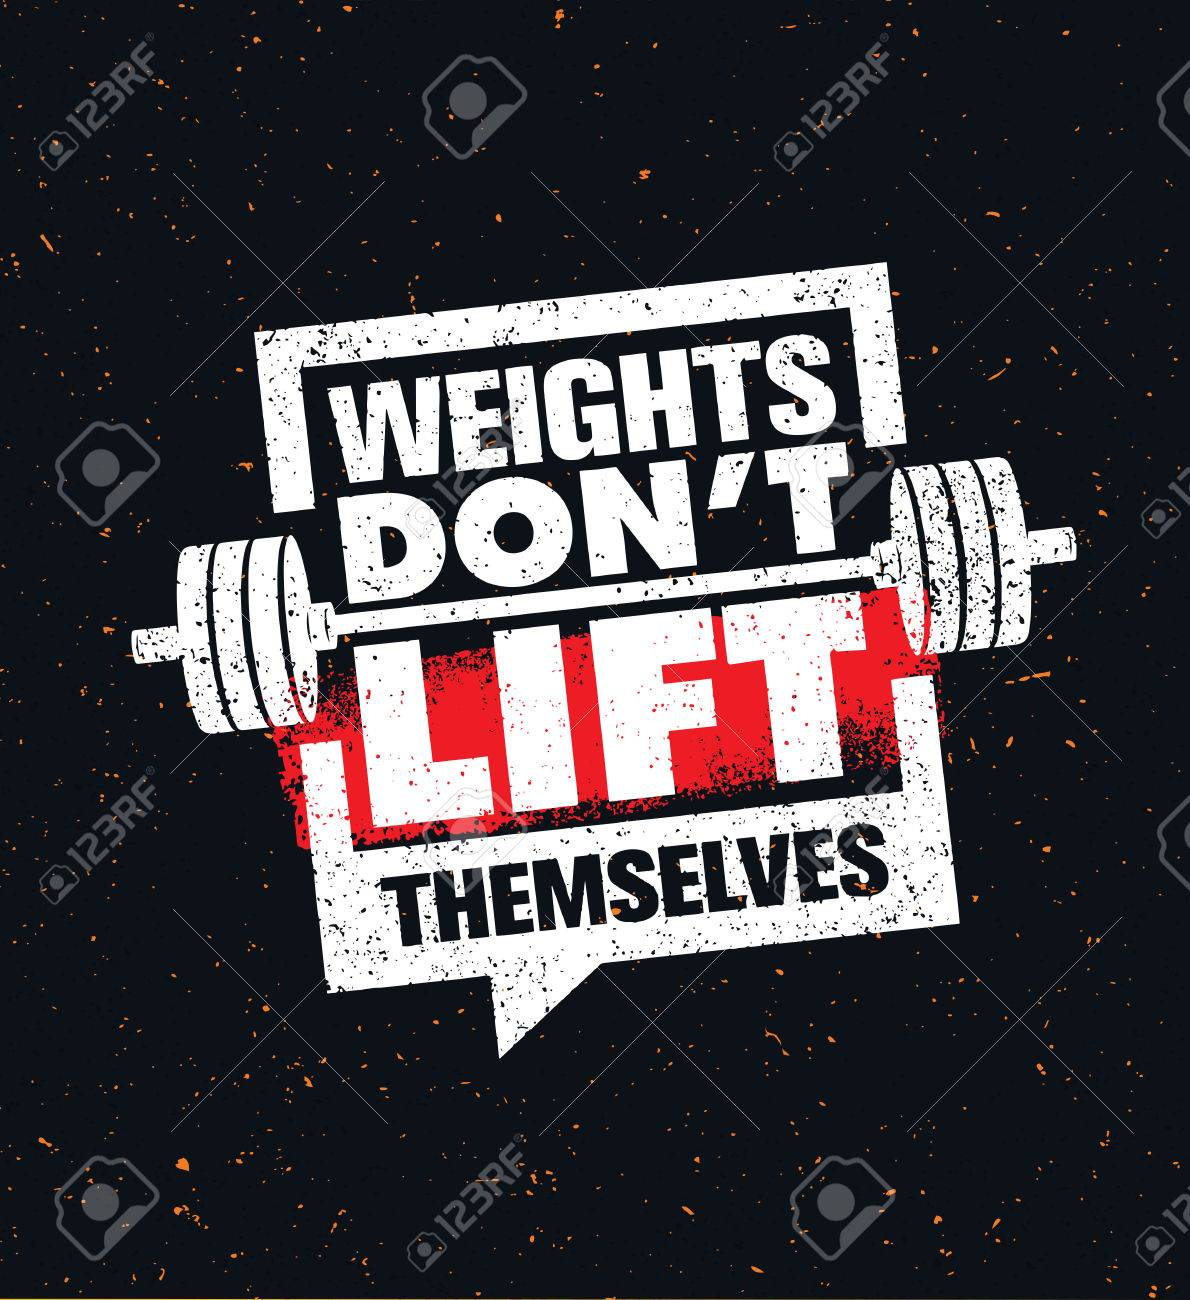 Weights Dont Lift Themselves. Gym Workout and Fitness Inspiring Motivation Quote. Creative Sport Typography - 72279150